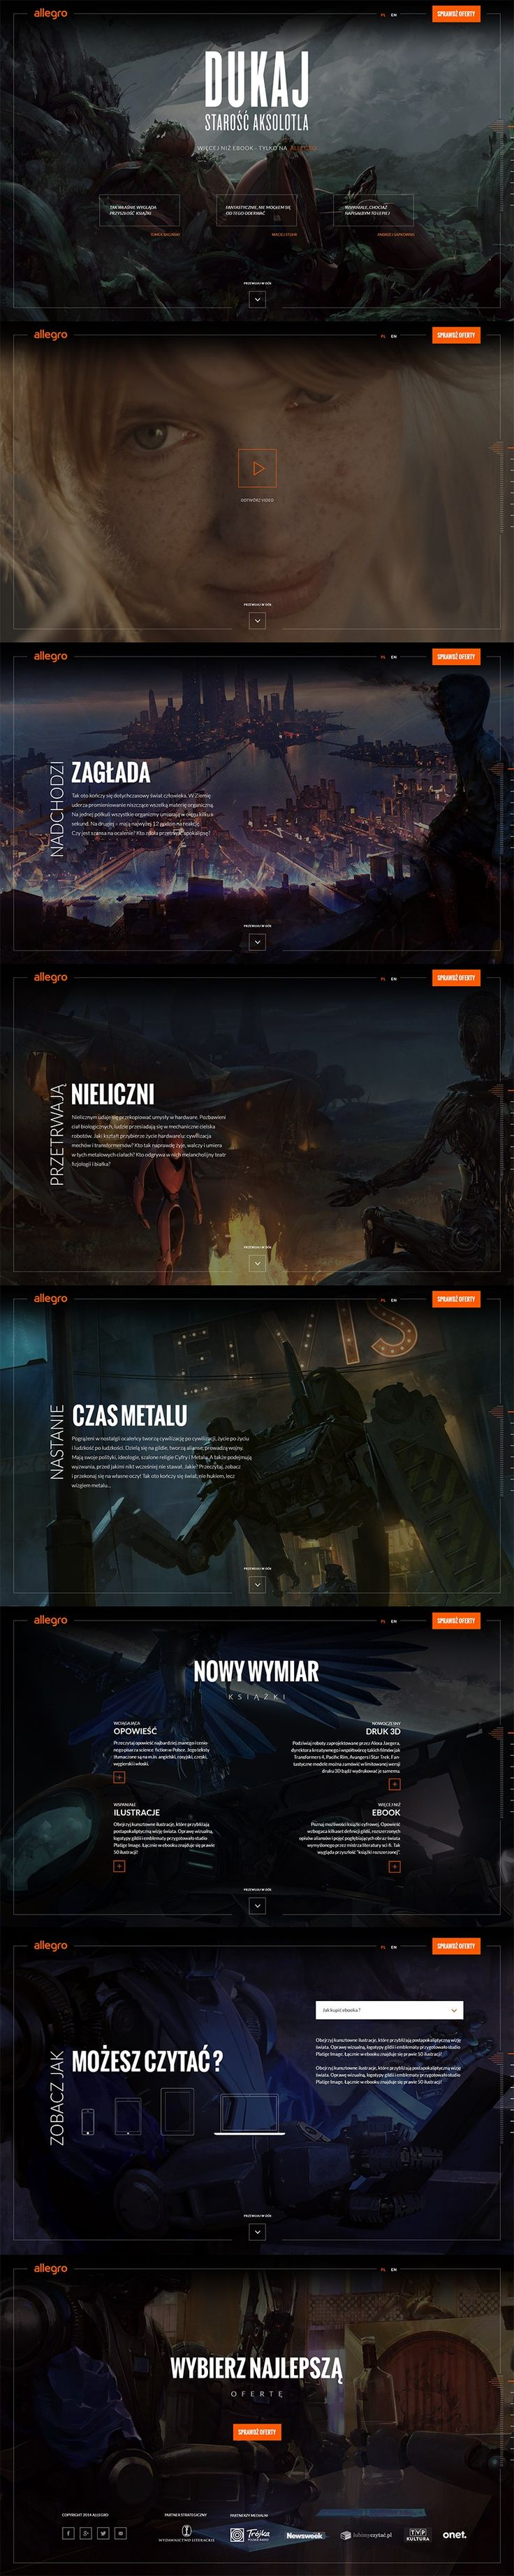 """Beautifully responsive, one-page experience for Polish sci-fi writer Jacek Dukaj's new novel """"The Old Axolotl""""  The site uses modern web technologies, including Pixi.js, a lightweight 2D rendering library that helped us animate objects in background.  Project was created in collaboration with Platige Image that delivered illustrations and video content.  Deliverables: UX, Web Design & Development. www.jacekdukaj.allegro.pl/#landing"""